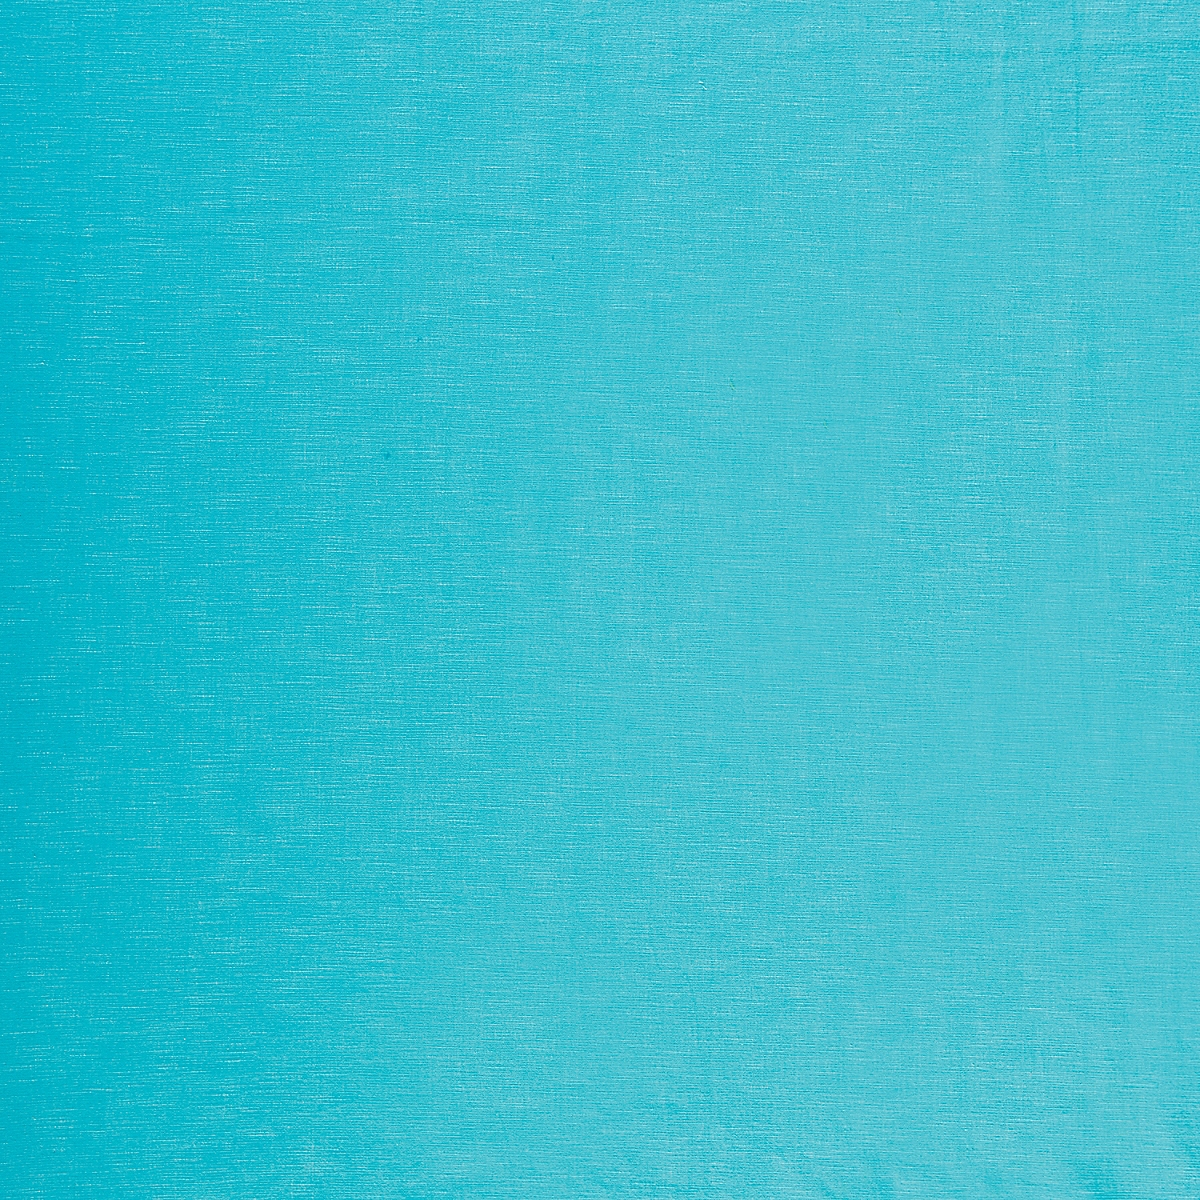 Coastal Cotton: Aqua (fabric yardage)